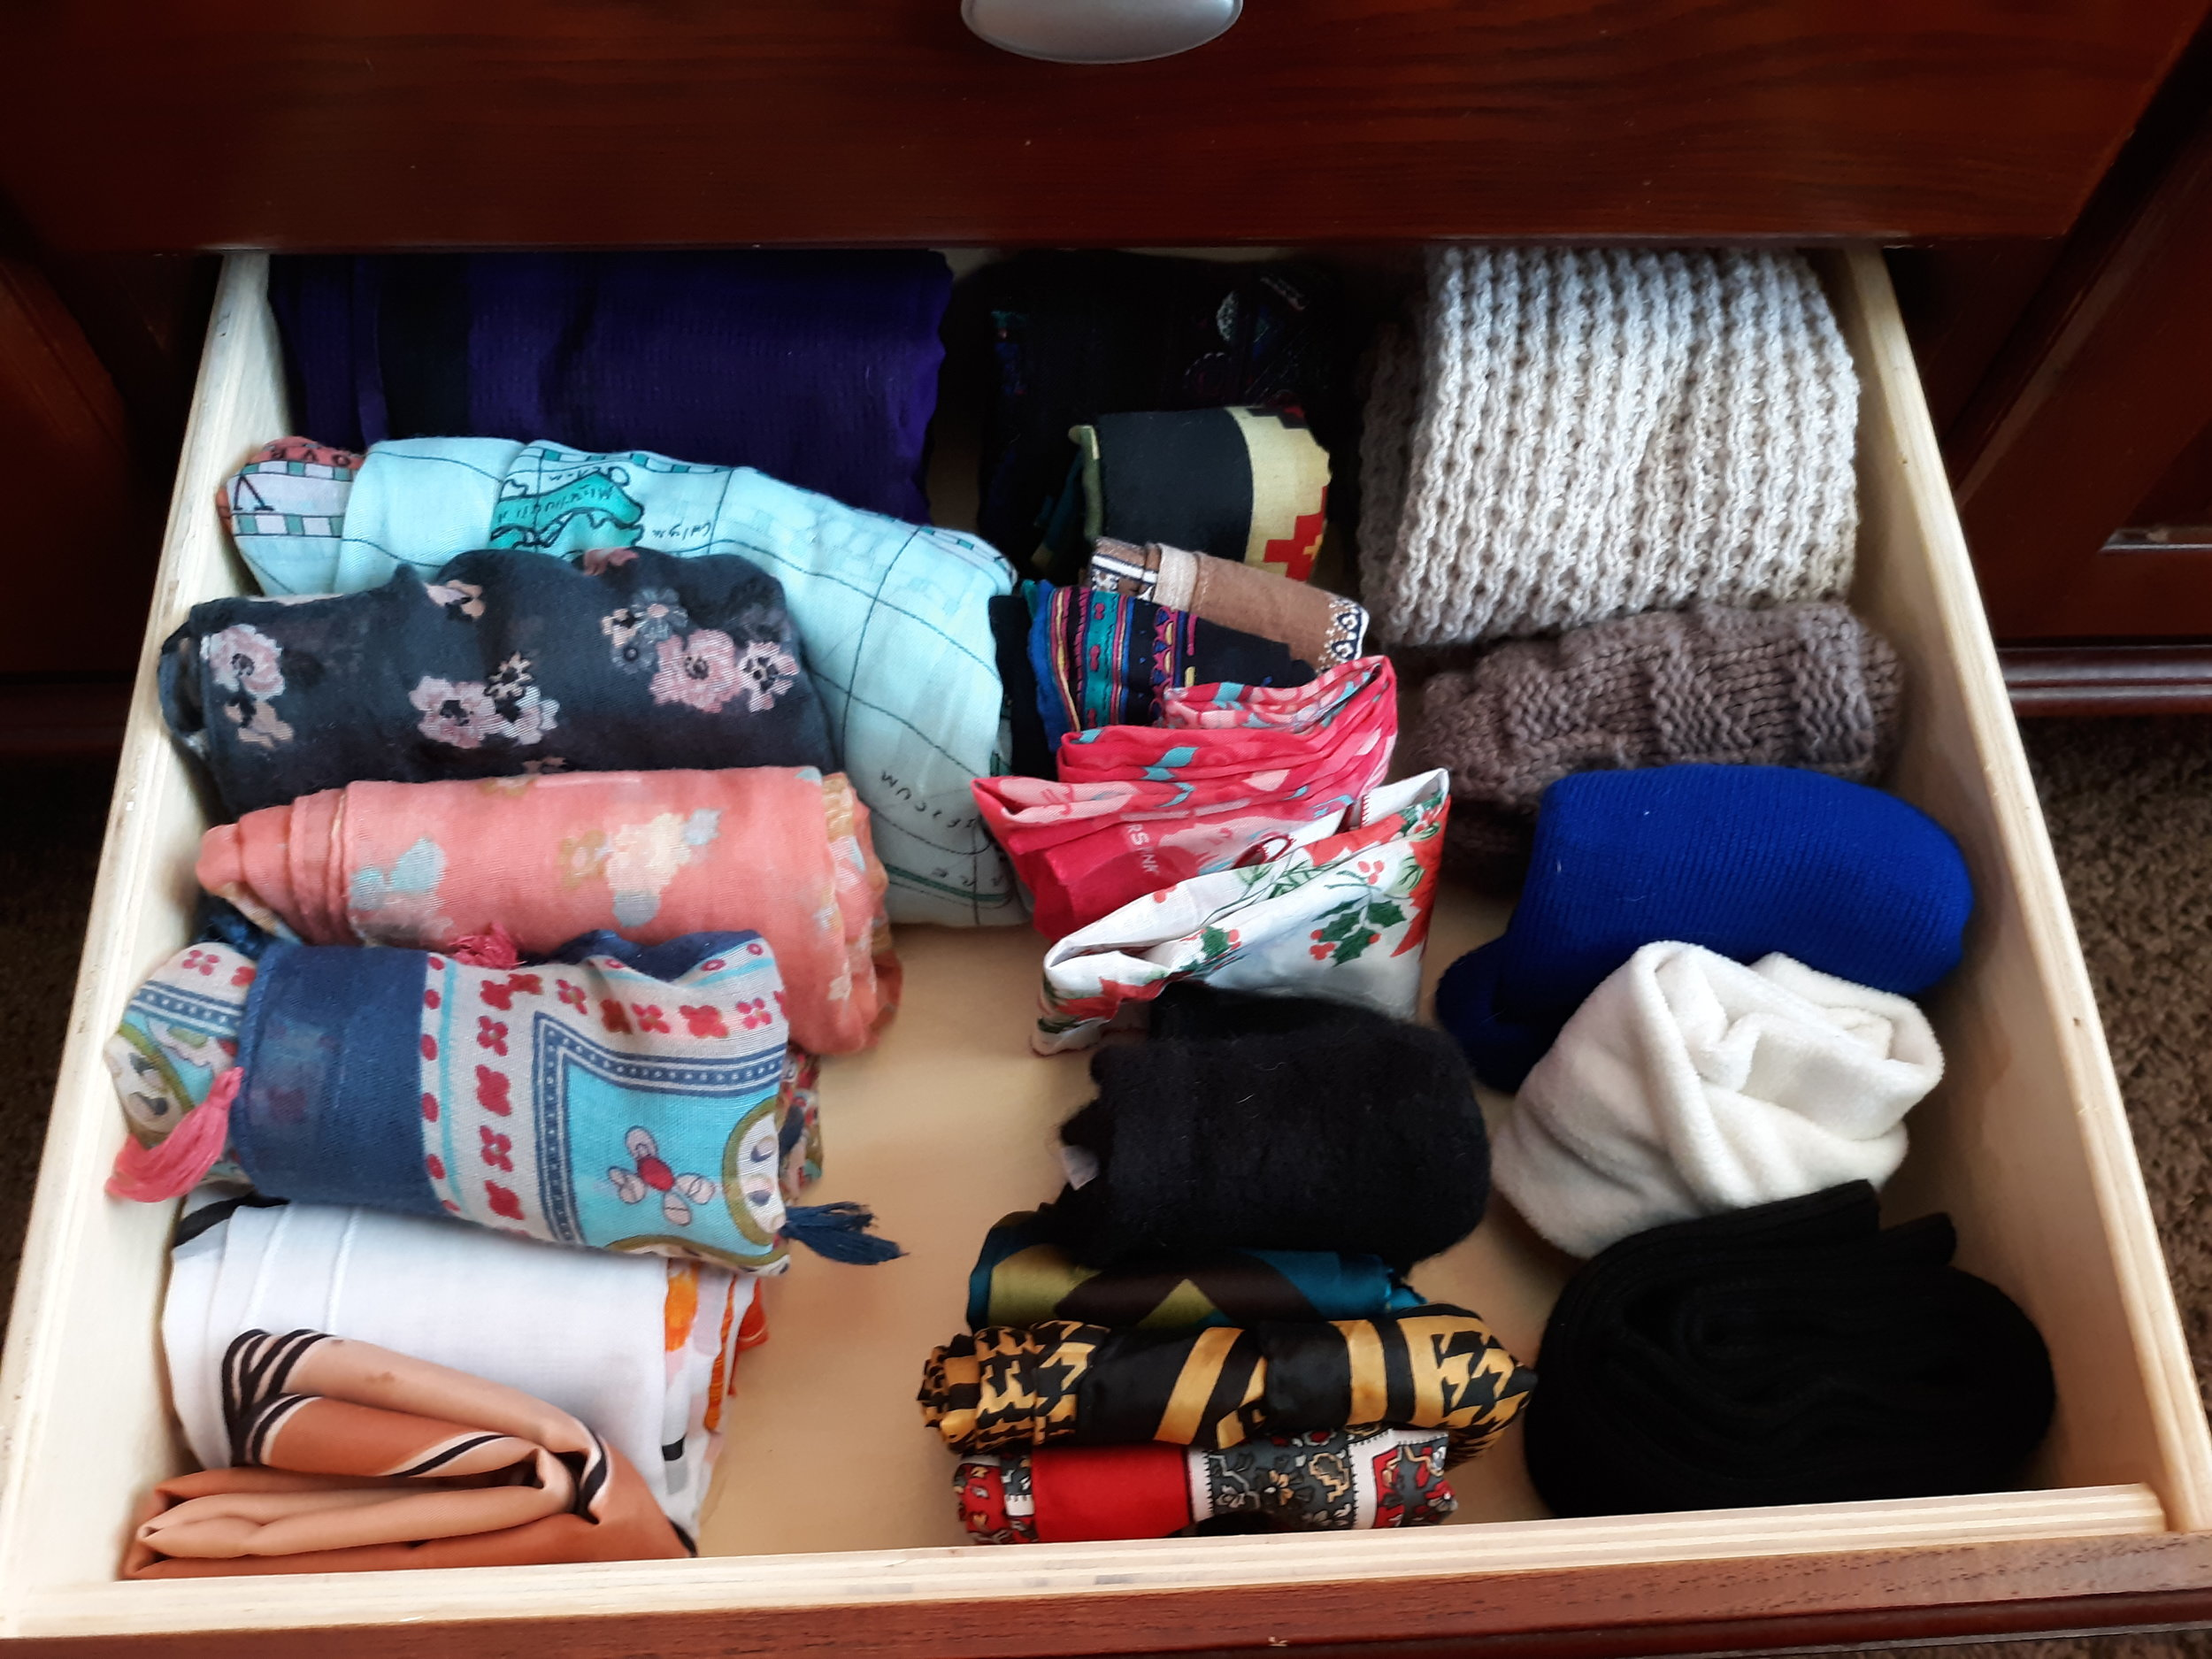 Organized scarf drawer a la Marie Kondo method! Picture by Maria Lindbergh